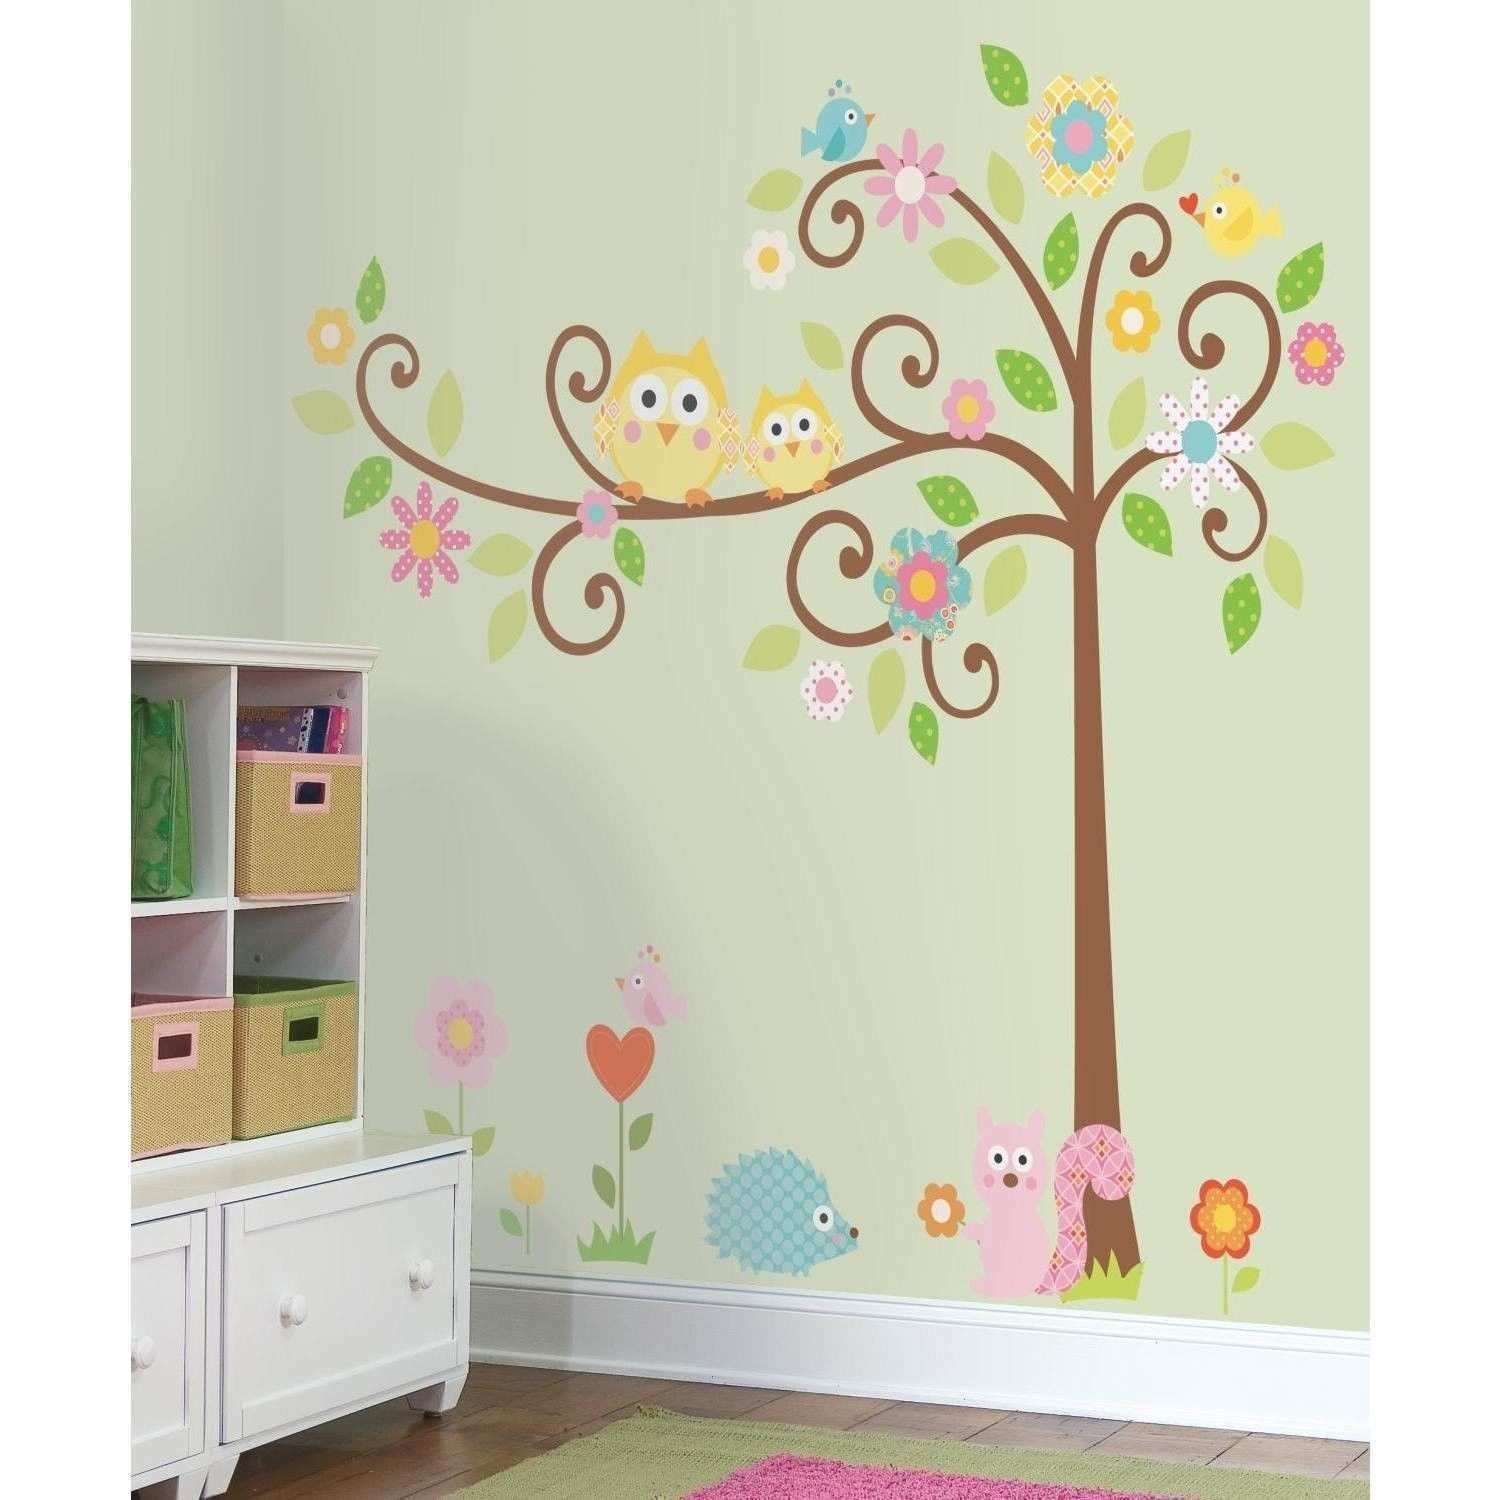 Kids Room Boys Wall Decor Nursery Stickers Kids Wall Murals Kids